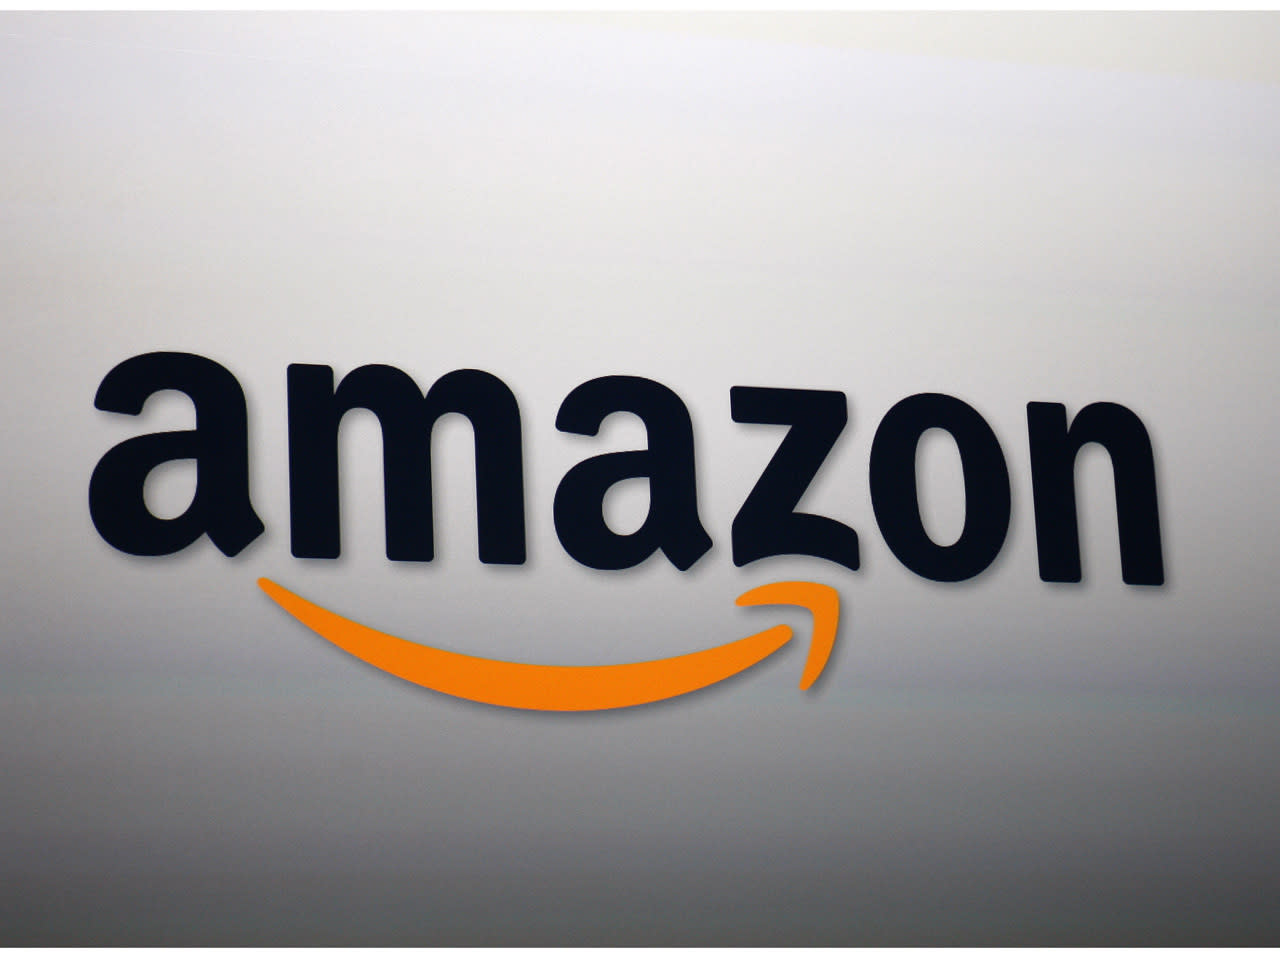 ​Amazon launching email service